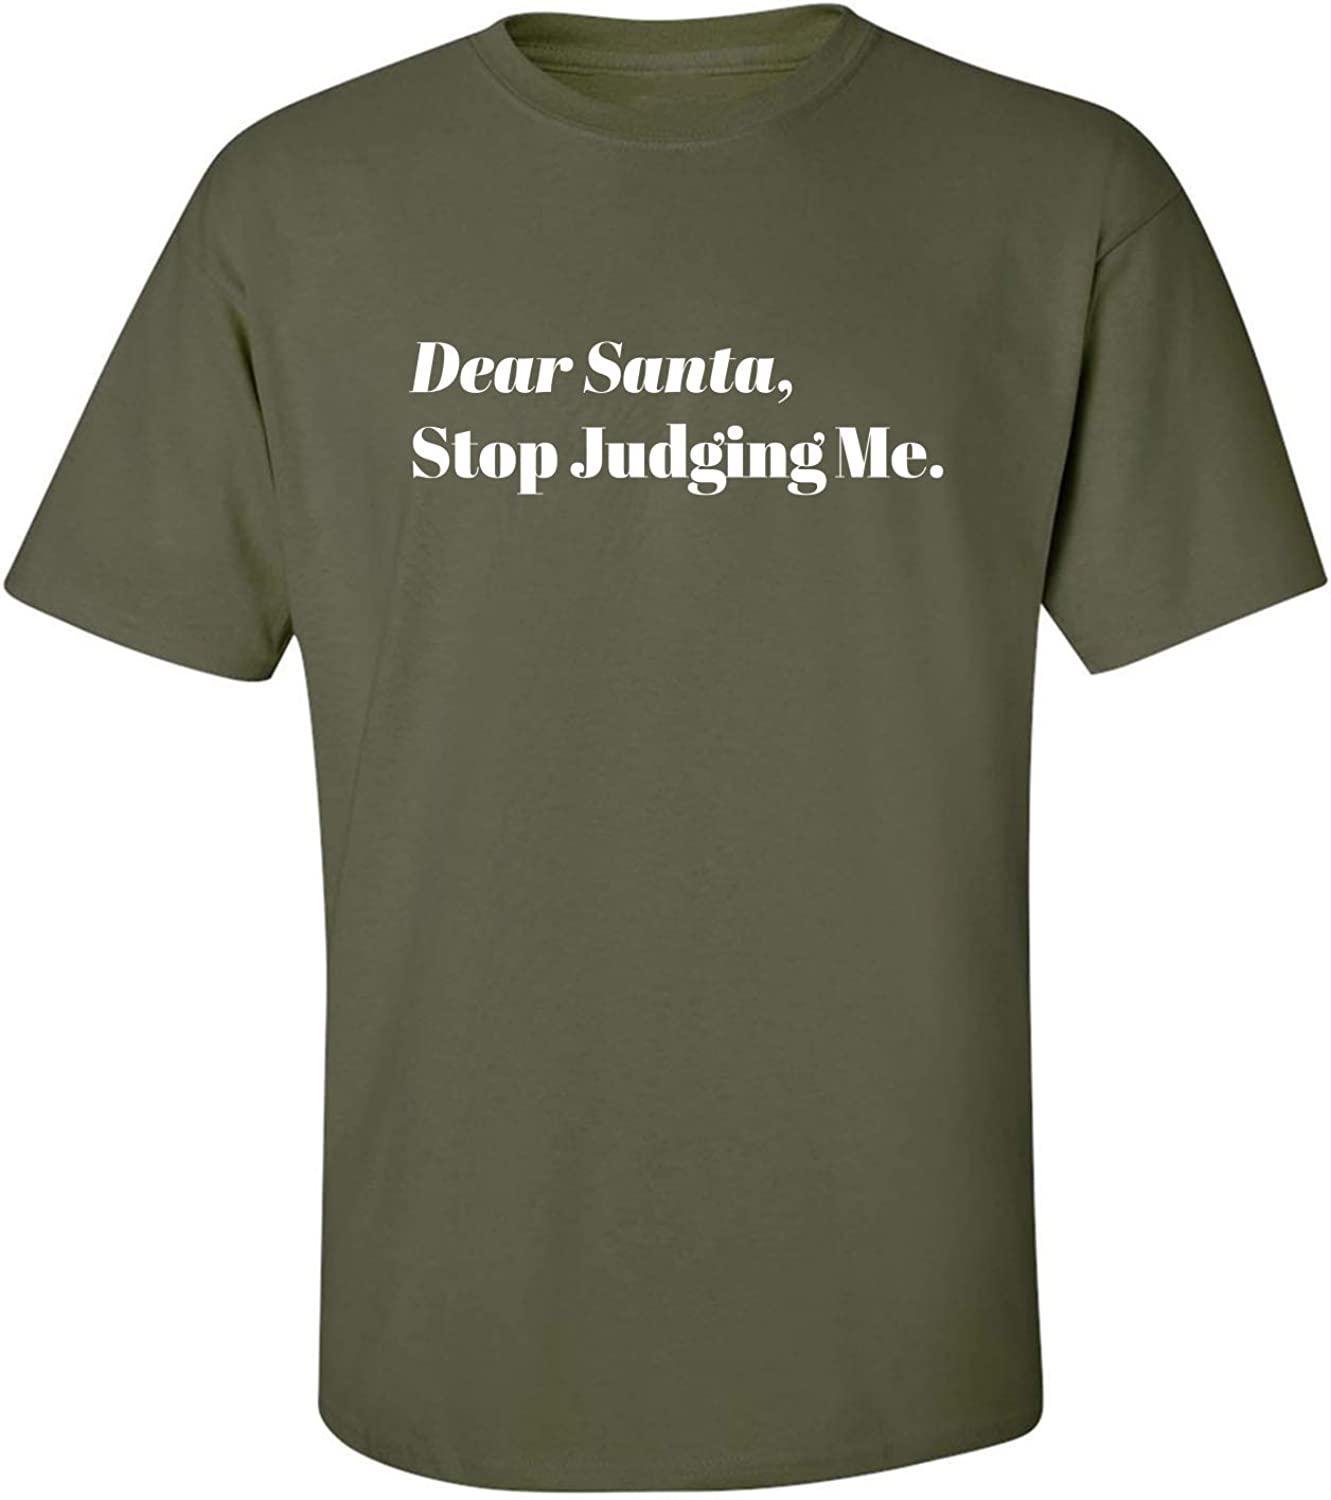 Dear Santa, Stop Judging Me. Adult T-Shirt in Military Green - XXX-Large